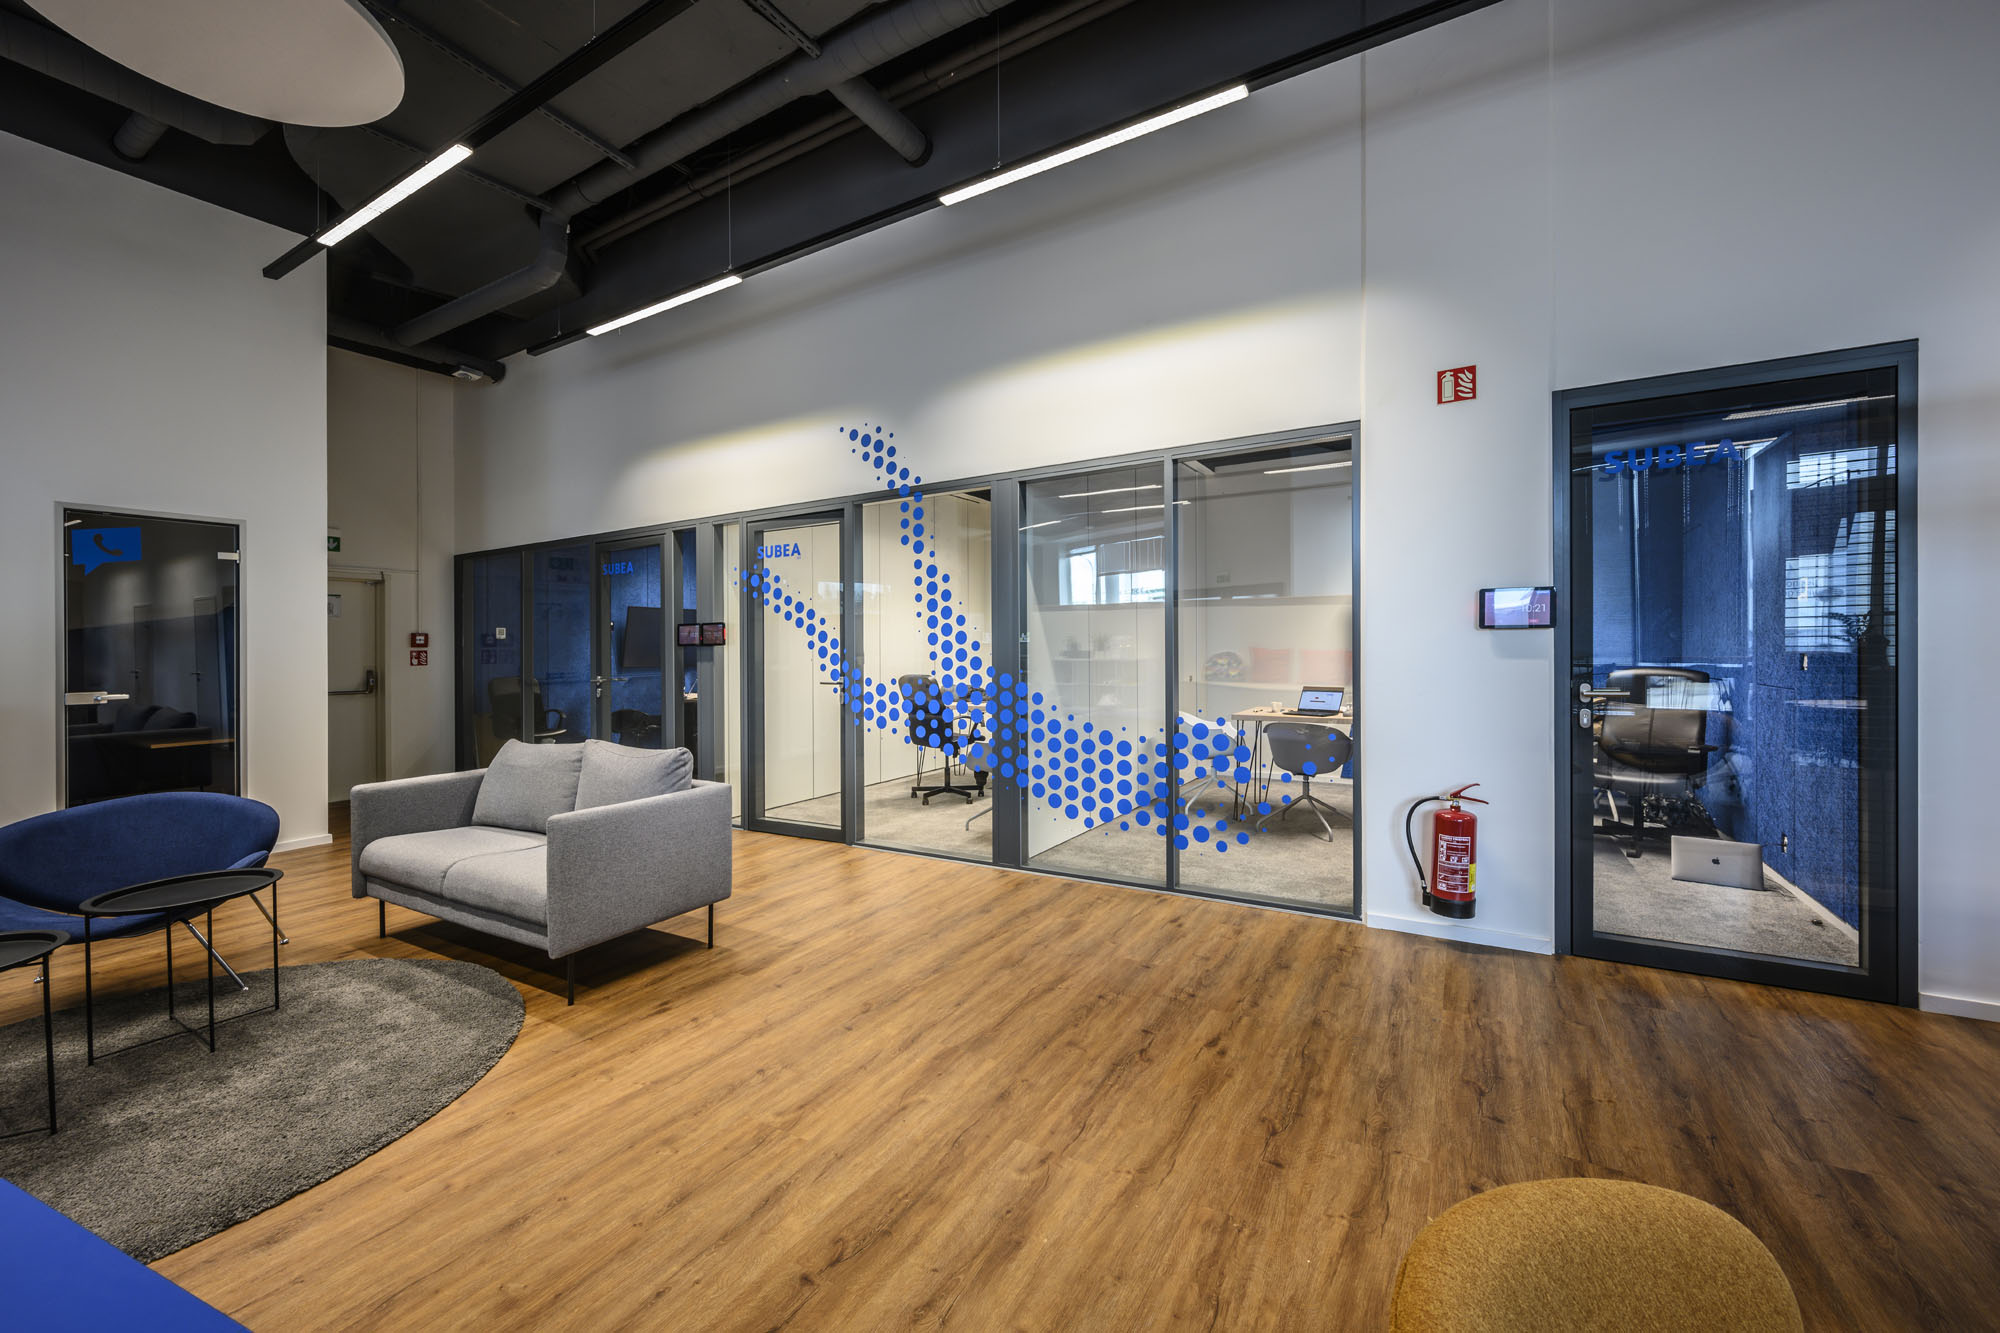 Modern flexible offices with graphic elements of various sports